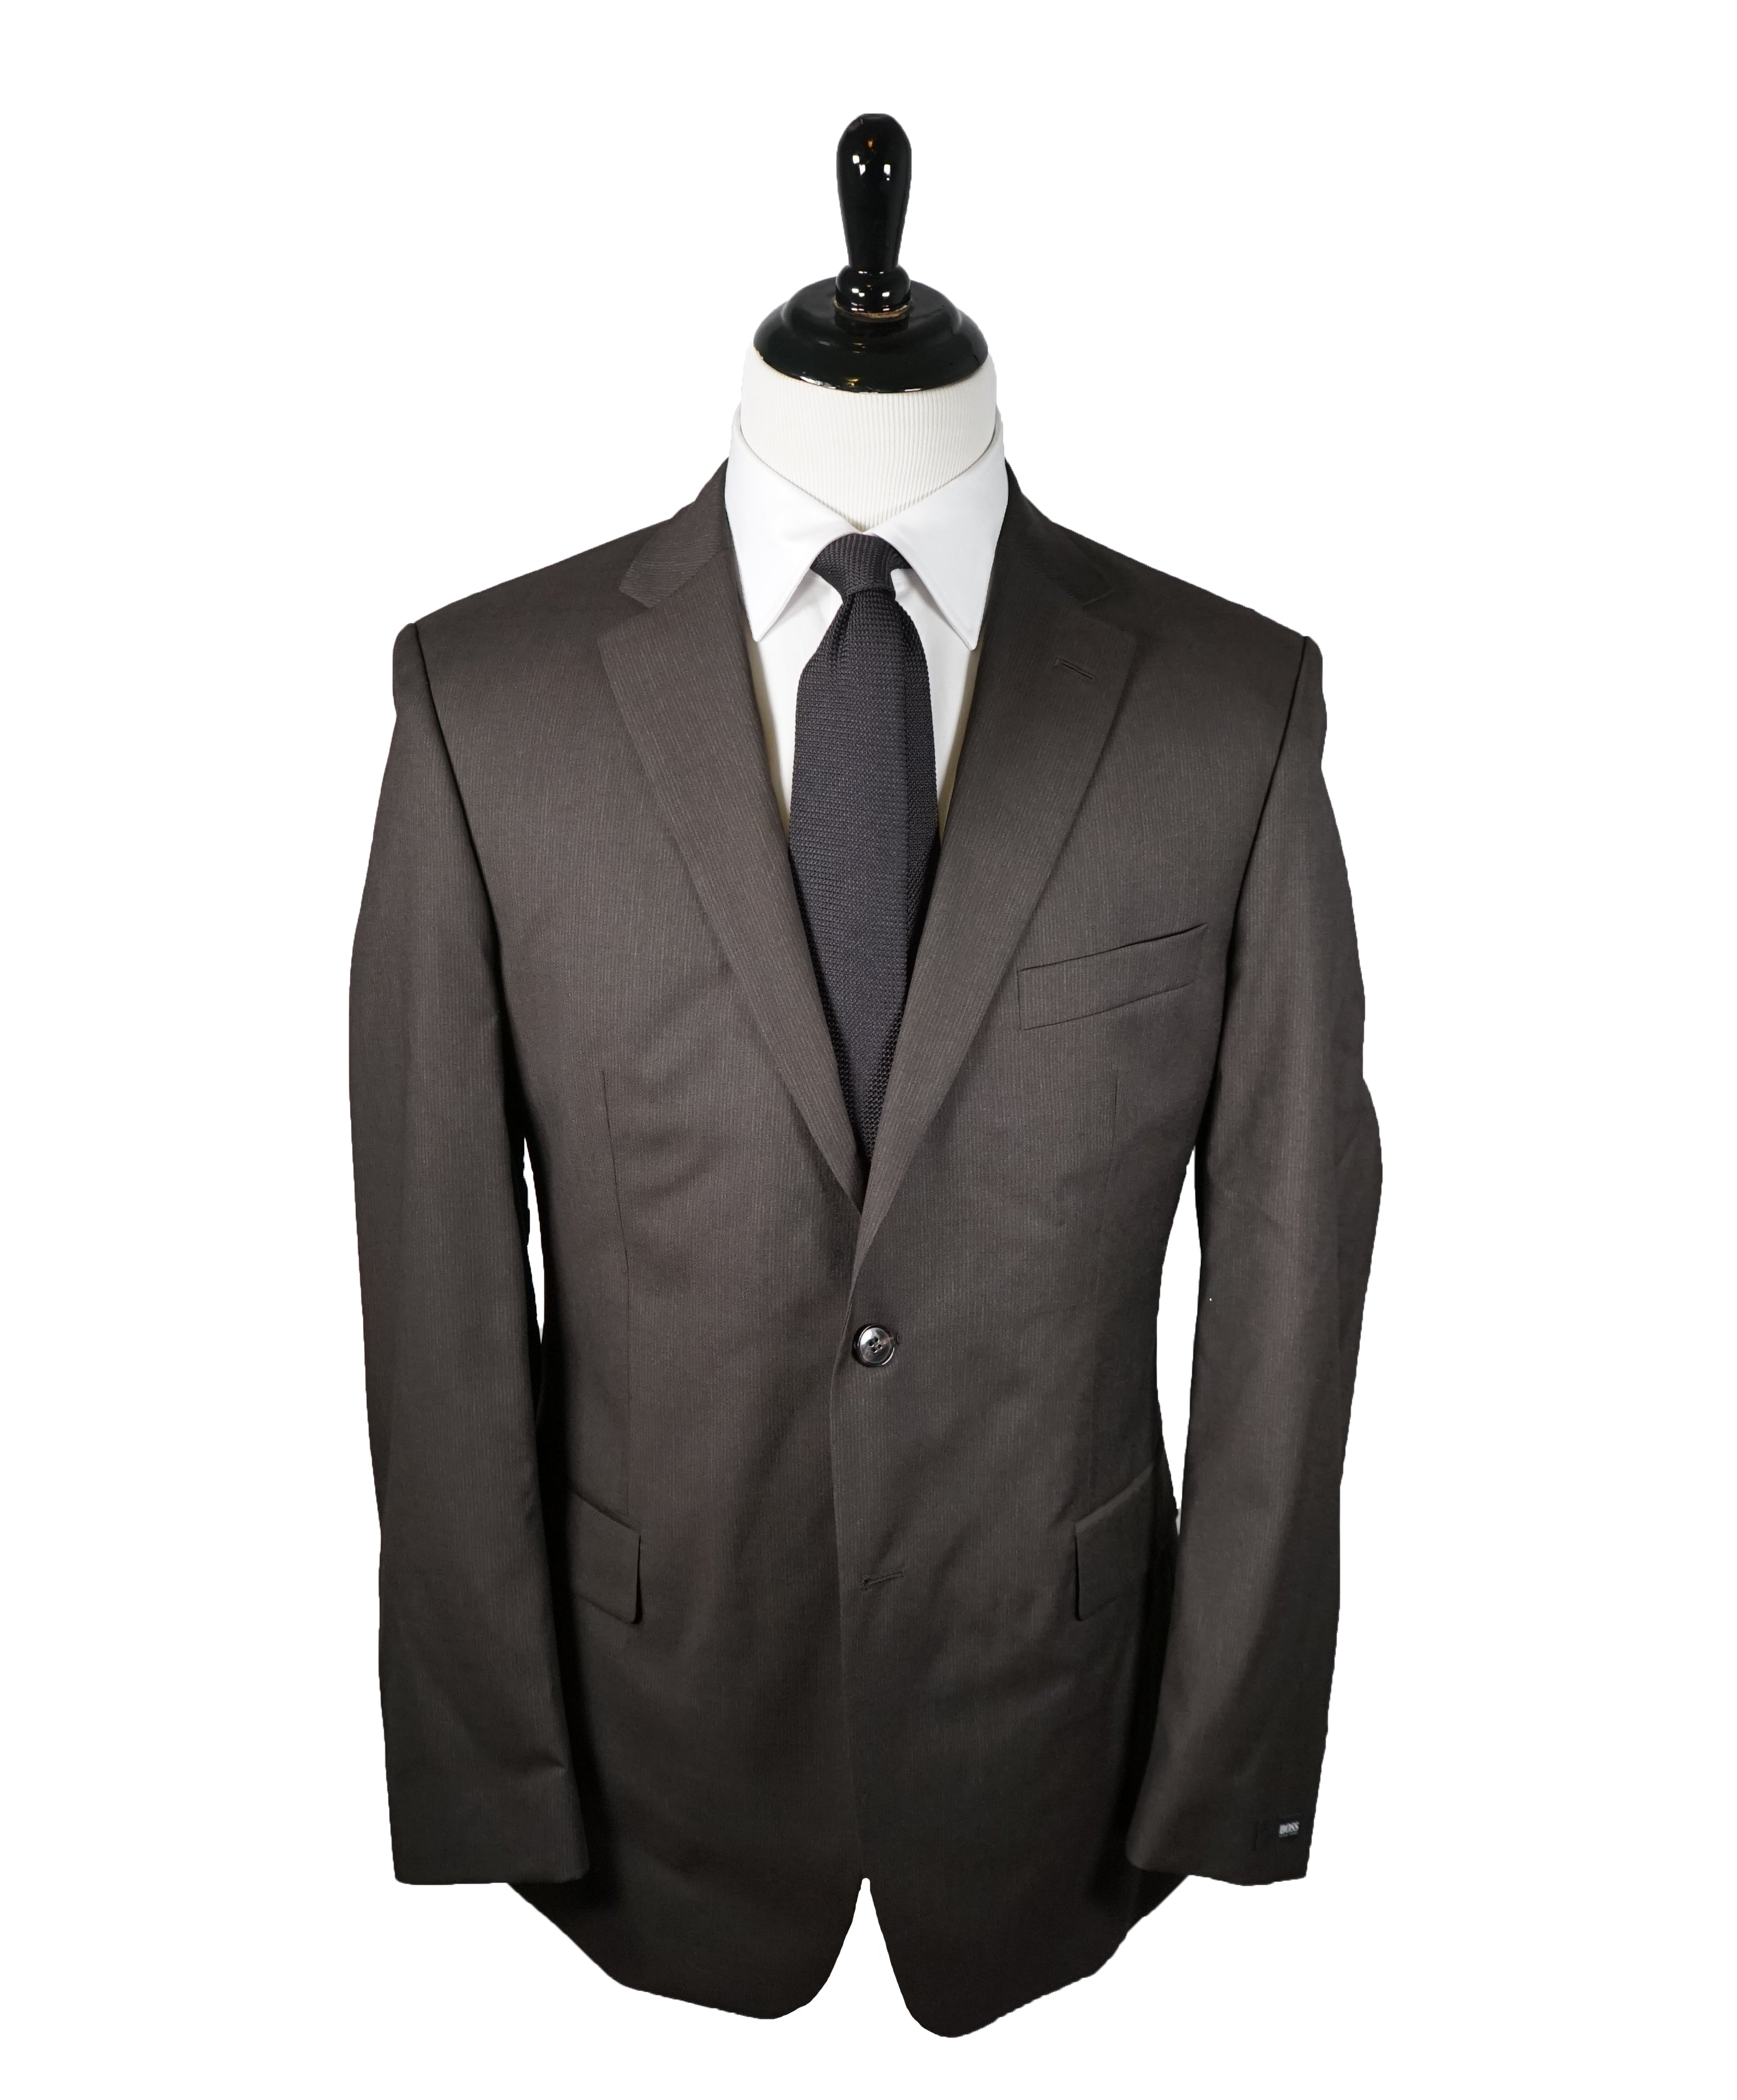 HUGO BOSS - Brown Micro Stripe Suit W Genuine Horn Buttons -  42R